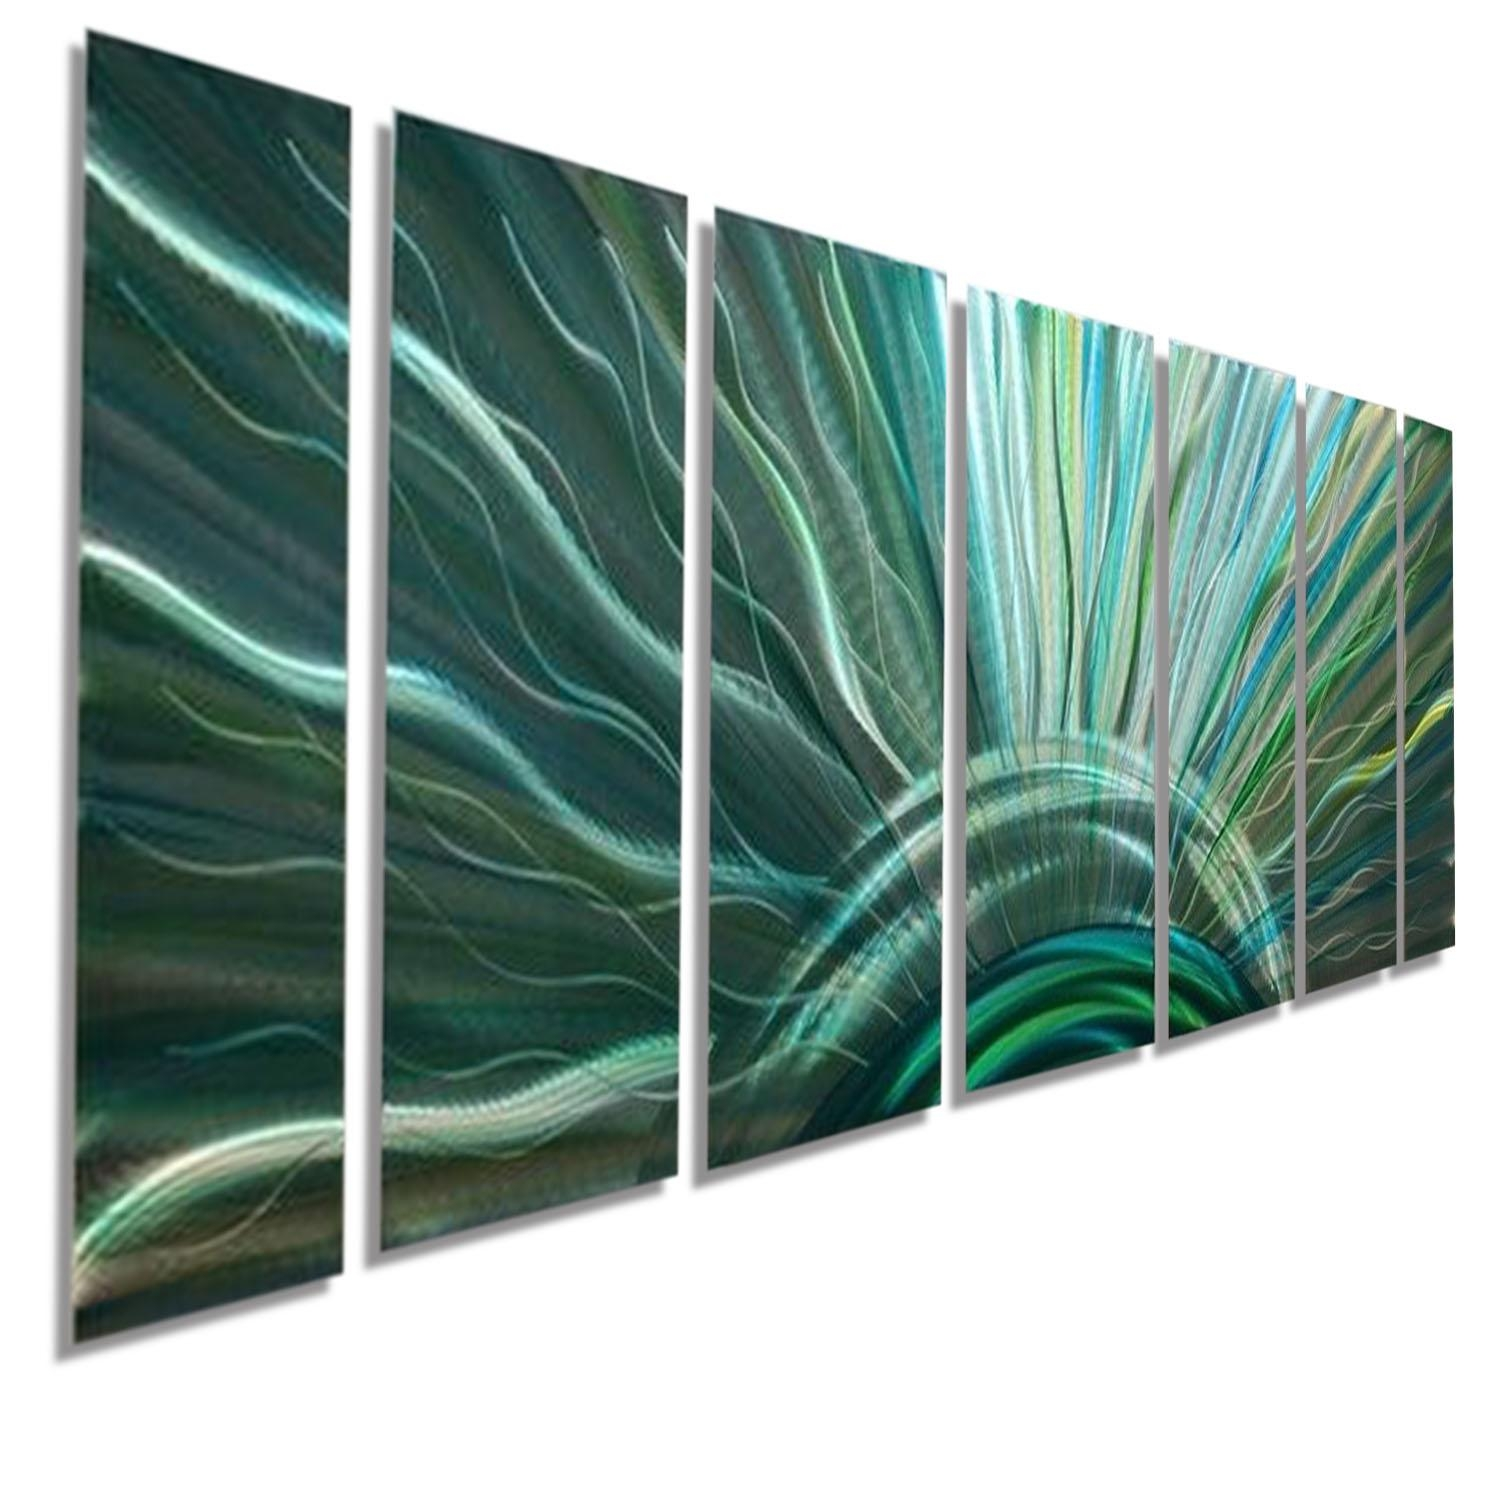 Blue Moon – Silver With Blue & Green Fusion Modern Metal Wall Art Inside Teal Metal Wall Art (Image 2 of 20)